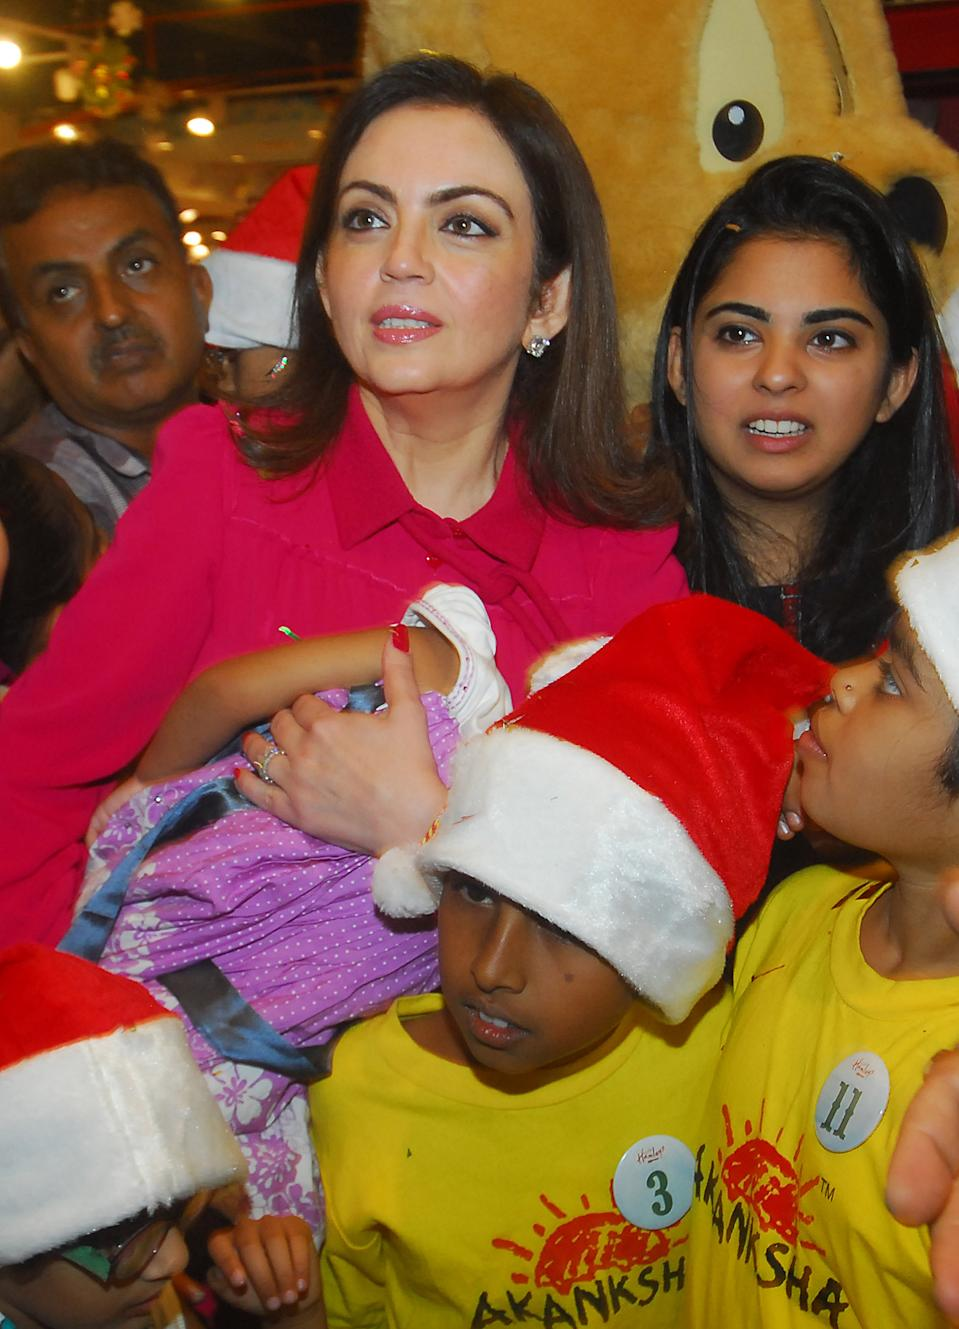 MUMBAI, INDIA - DECEMBER 24: Nita Ambani, Chairperson of Reliance Foundation with her daughter Isha and the special Kids of Drishti & Akansha during the Christmas celebration at Hamleys Store on December 24, 2012 in Mumbai, India. (Photo by Prodip Guha/Hindustan Times via Getty Images)